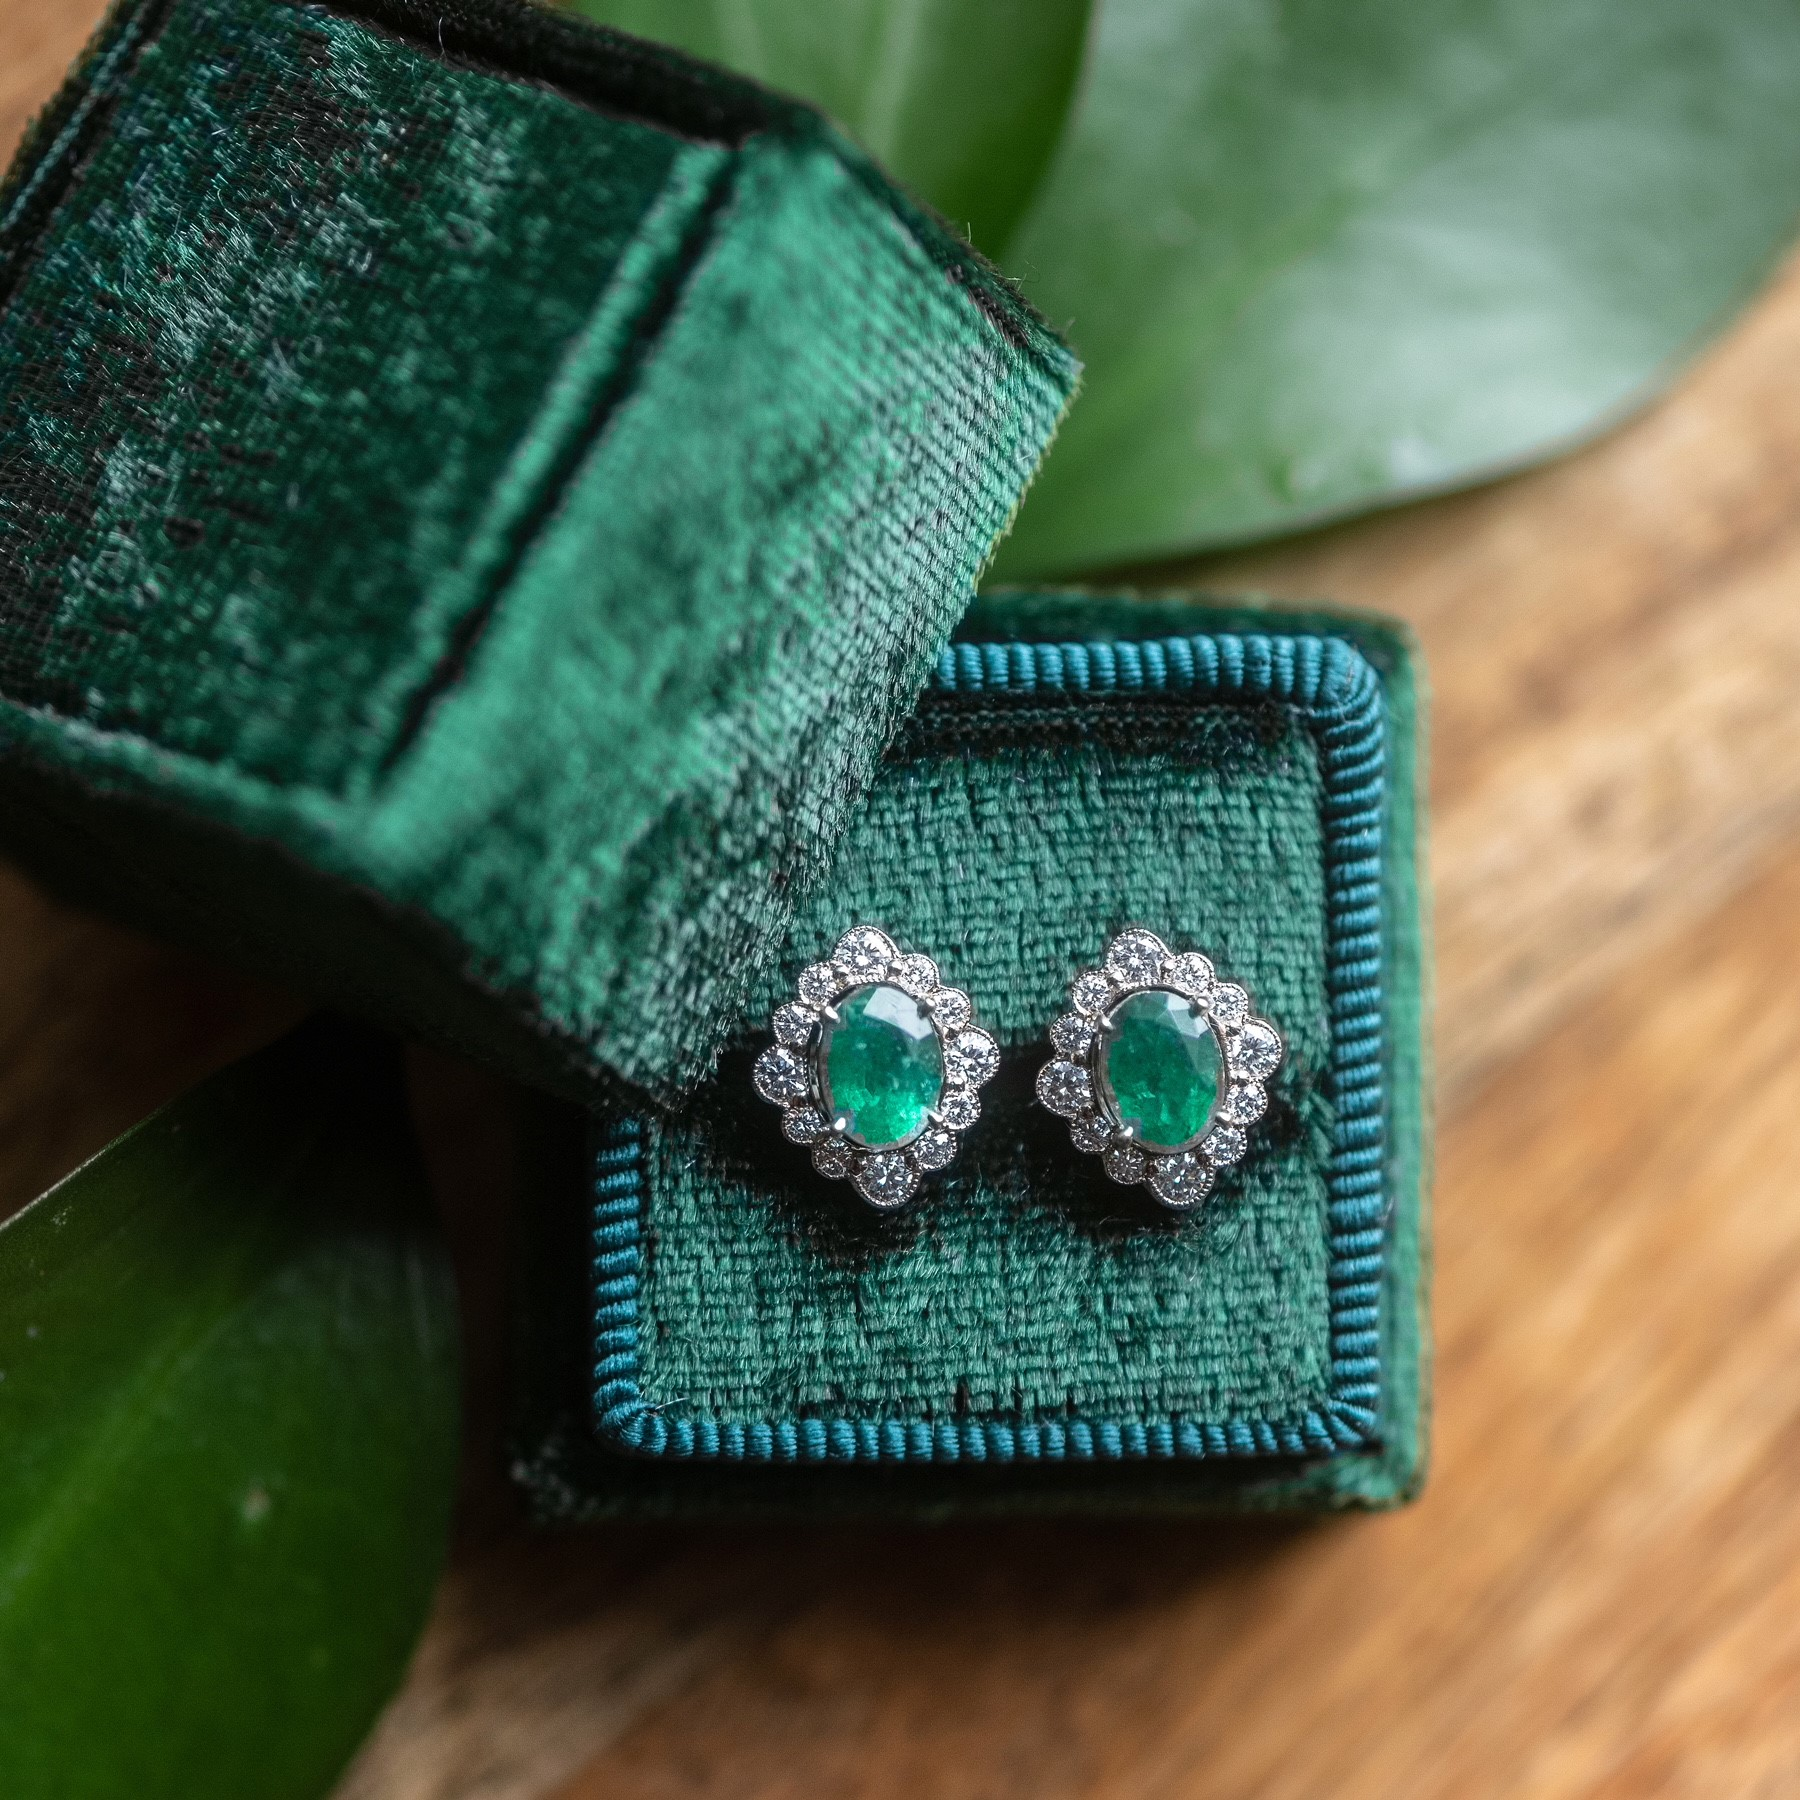 We're teeing up for a great Saturday with these emerald and diamond beauties! Shop  HERE .